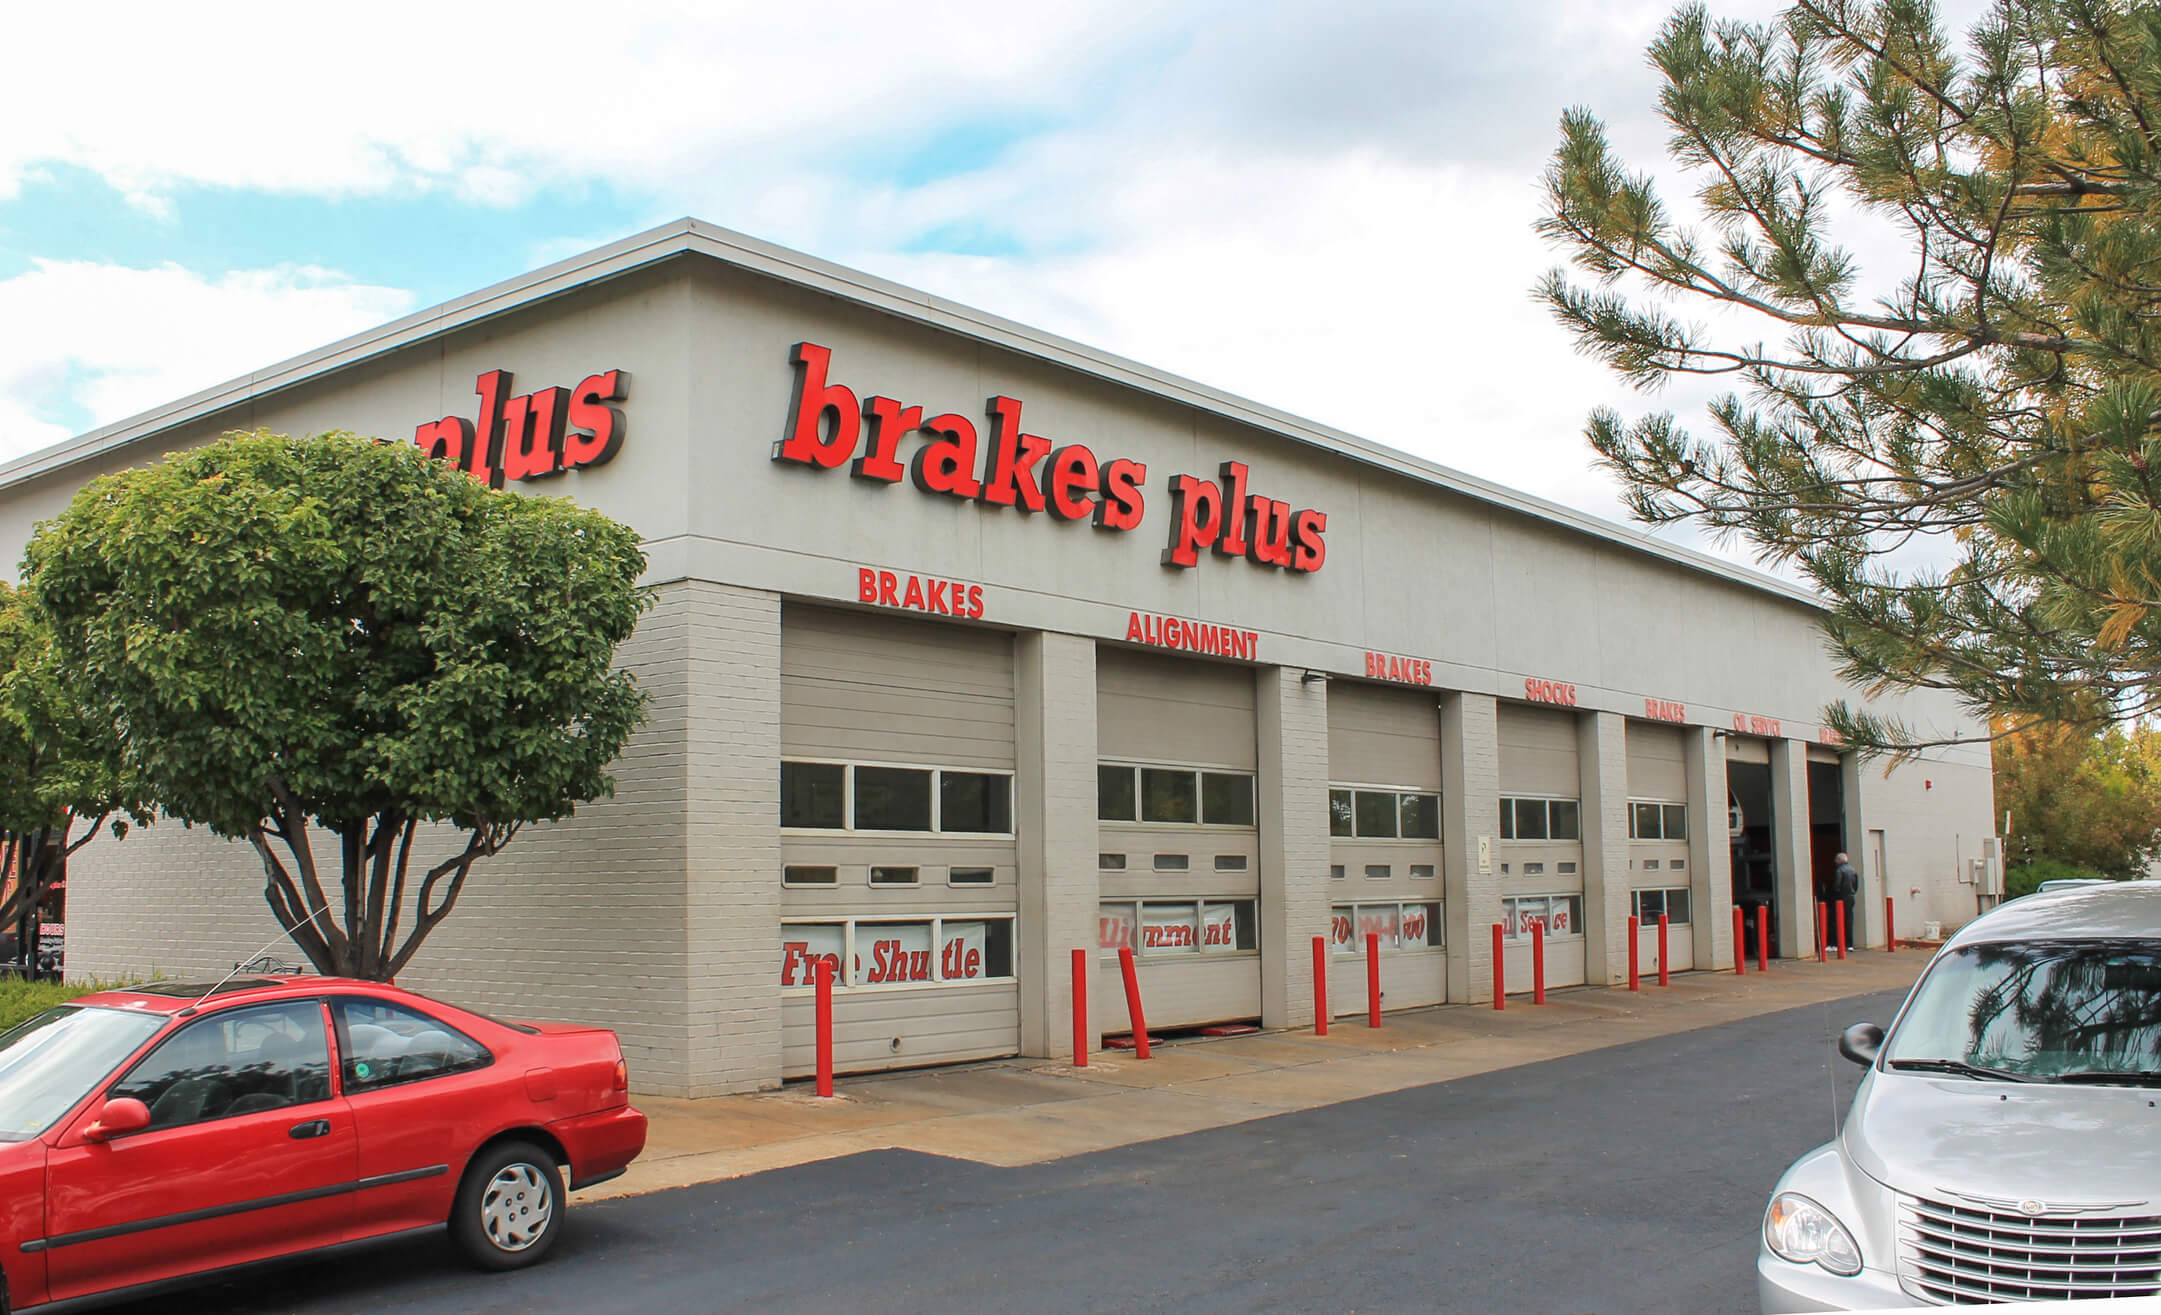 Brakes Plus at Fort Collins, CO - The Landings